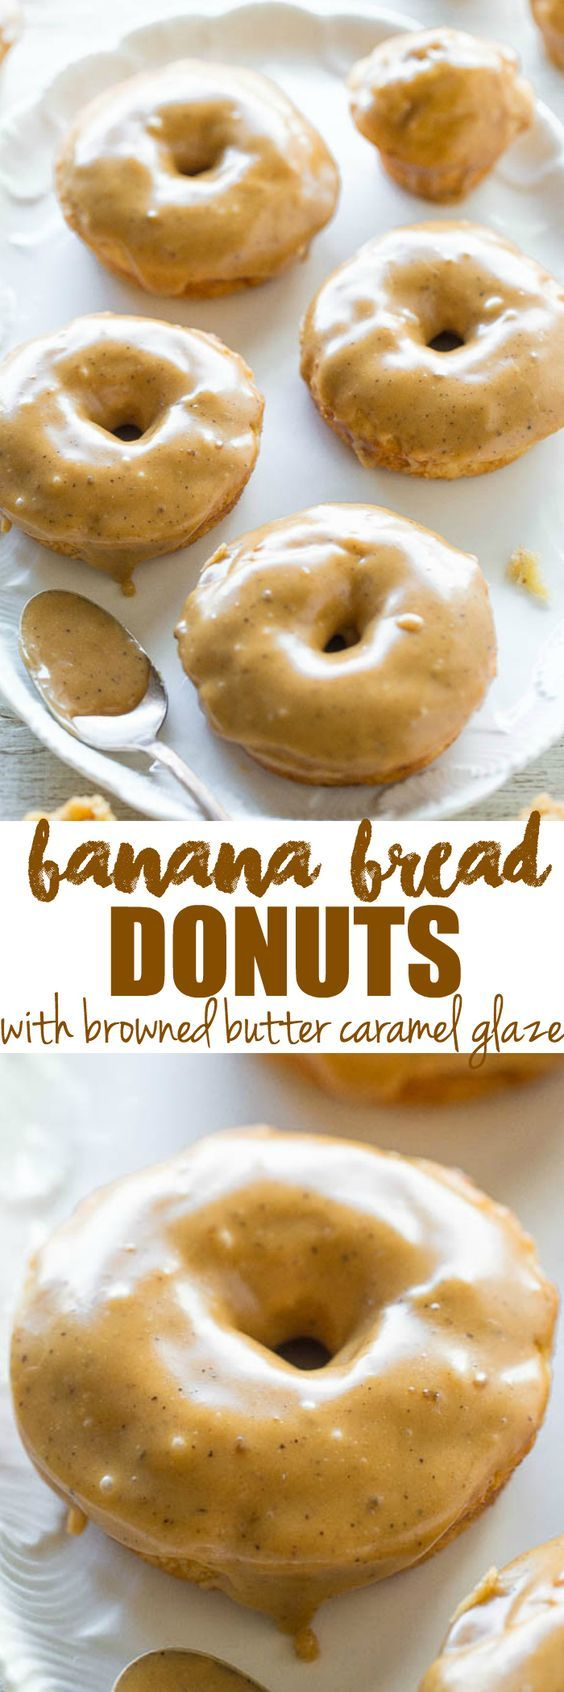 Banana Bread Donuts with Browned Butter Caramel Glaze - Banana bread in the form of soft, fluffy baked donuts and donut holes!! No-mixer recipe that's as easy as making muffins! The glaze makes them IRRESISTIBLE!!: